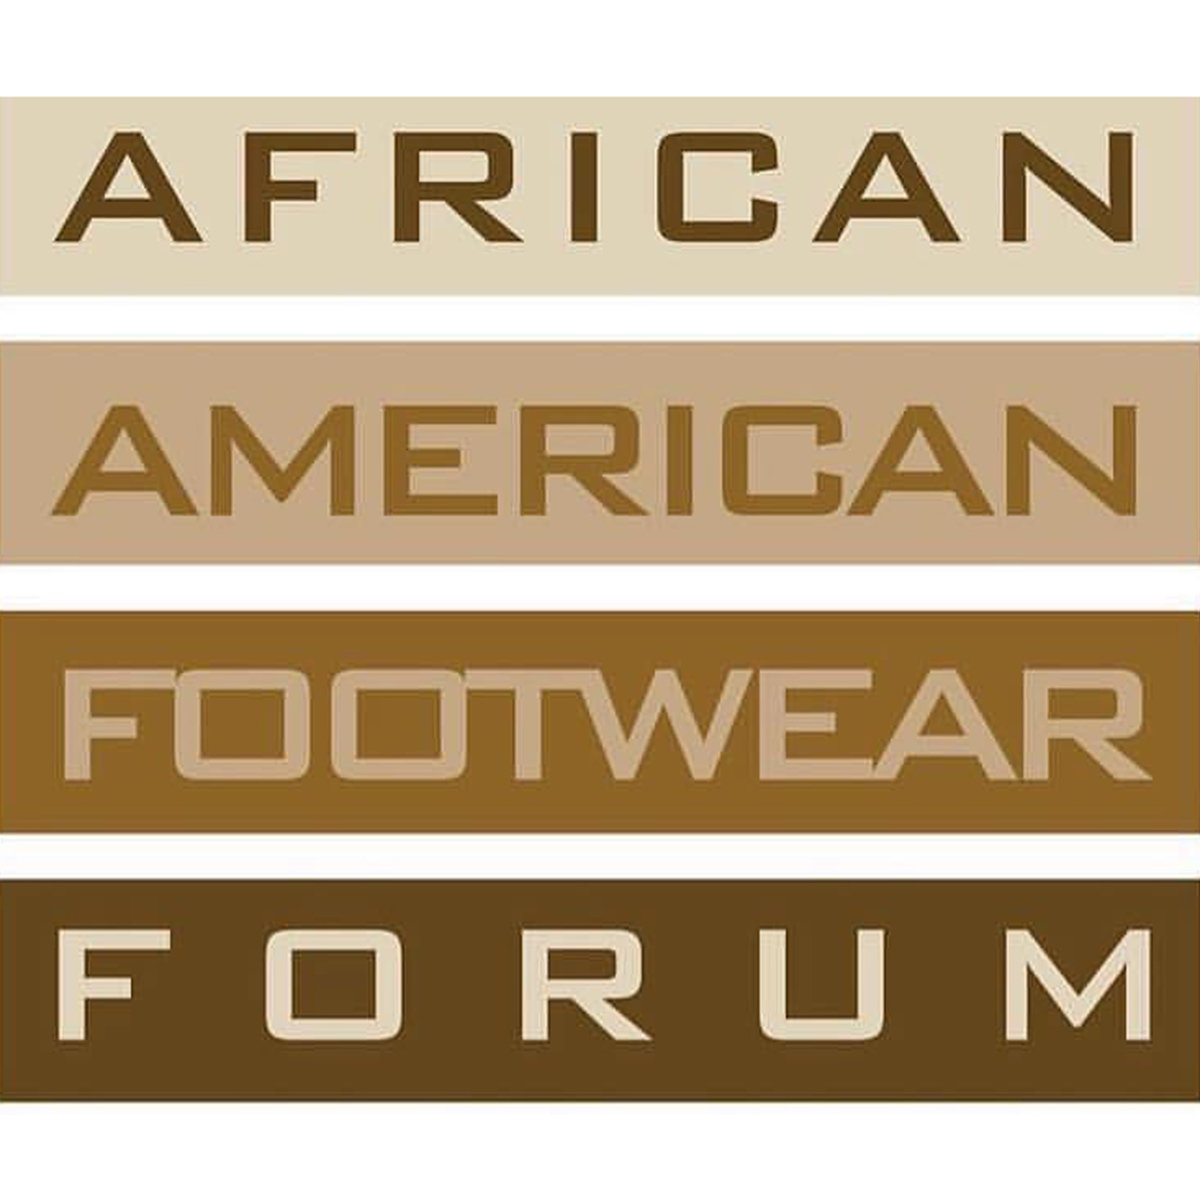 Second African American Footwear Forum to Be Held on August in Portland